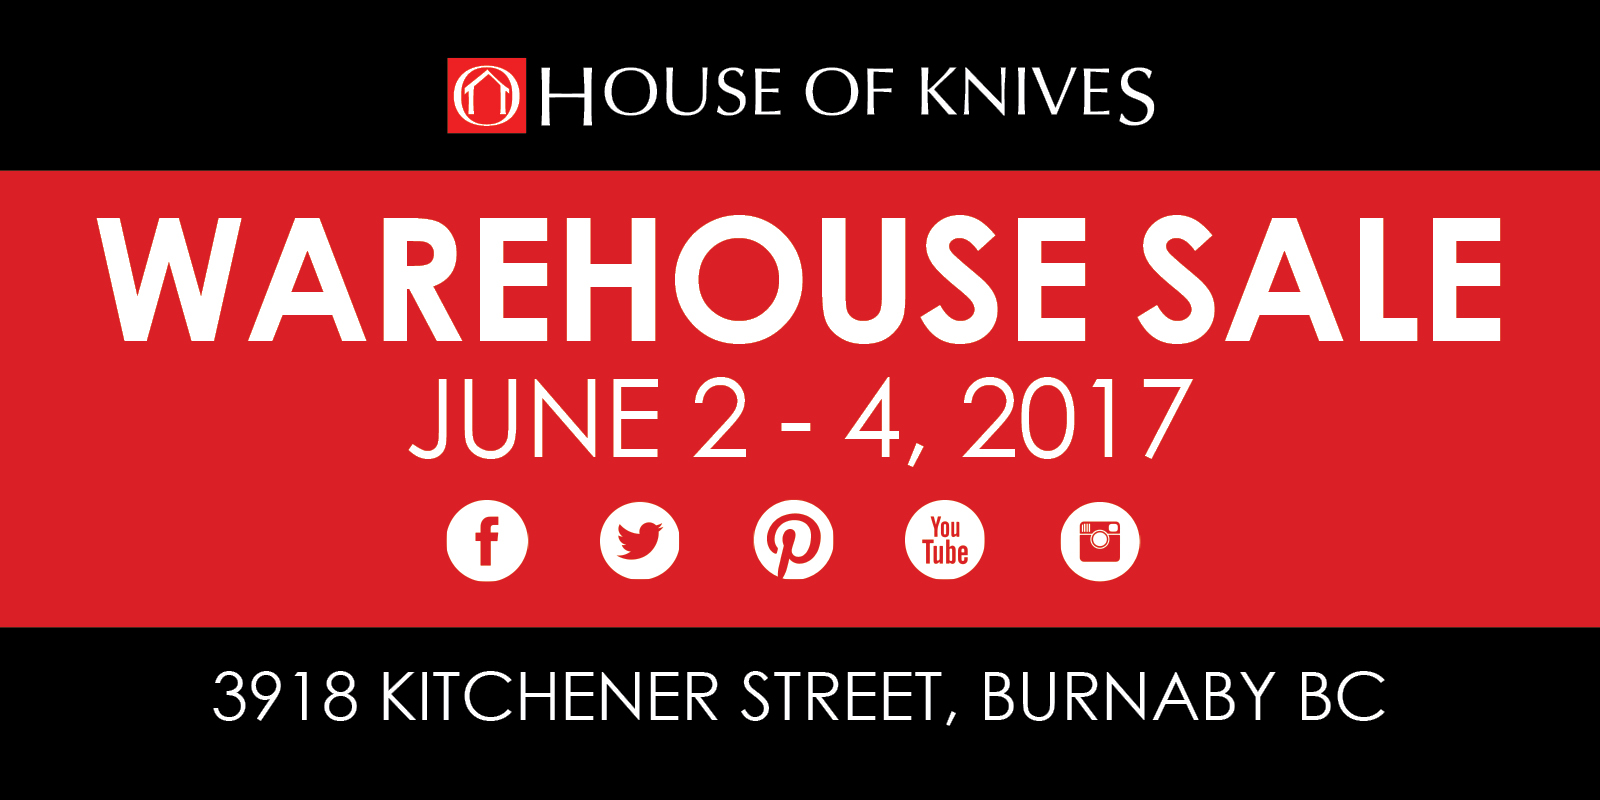 The House of Knives Warehouse Sale - June 2 - 4